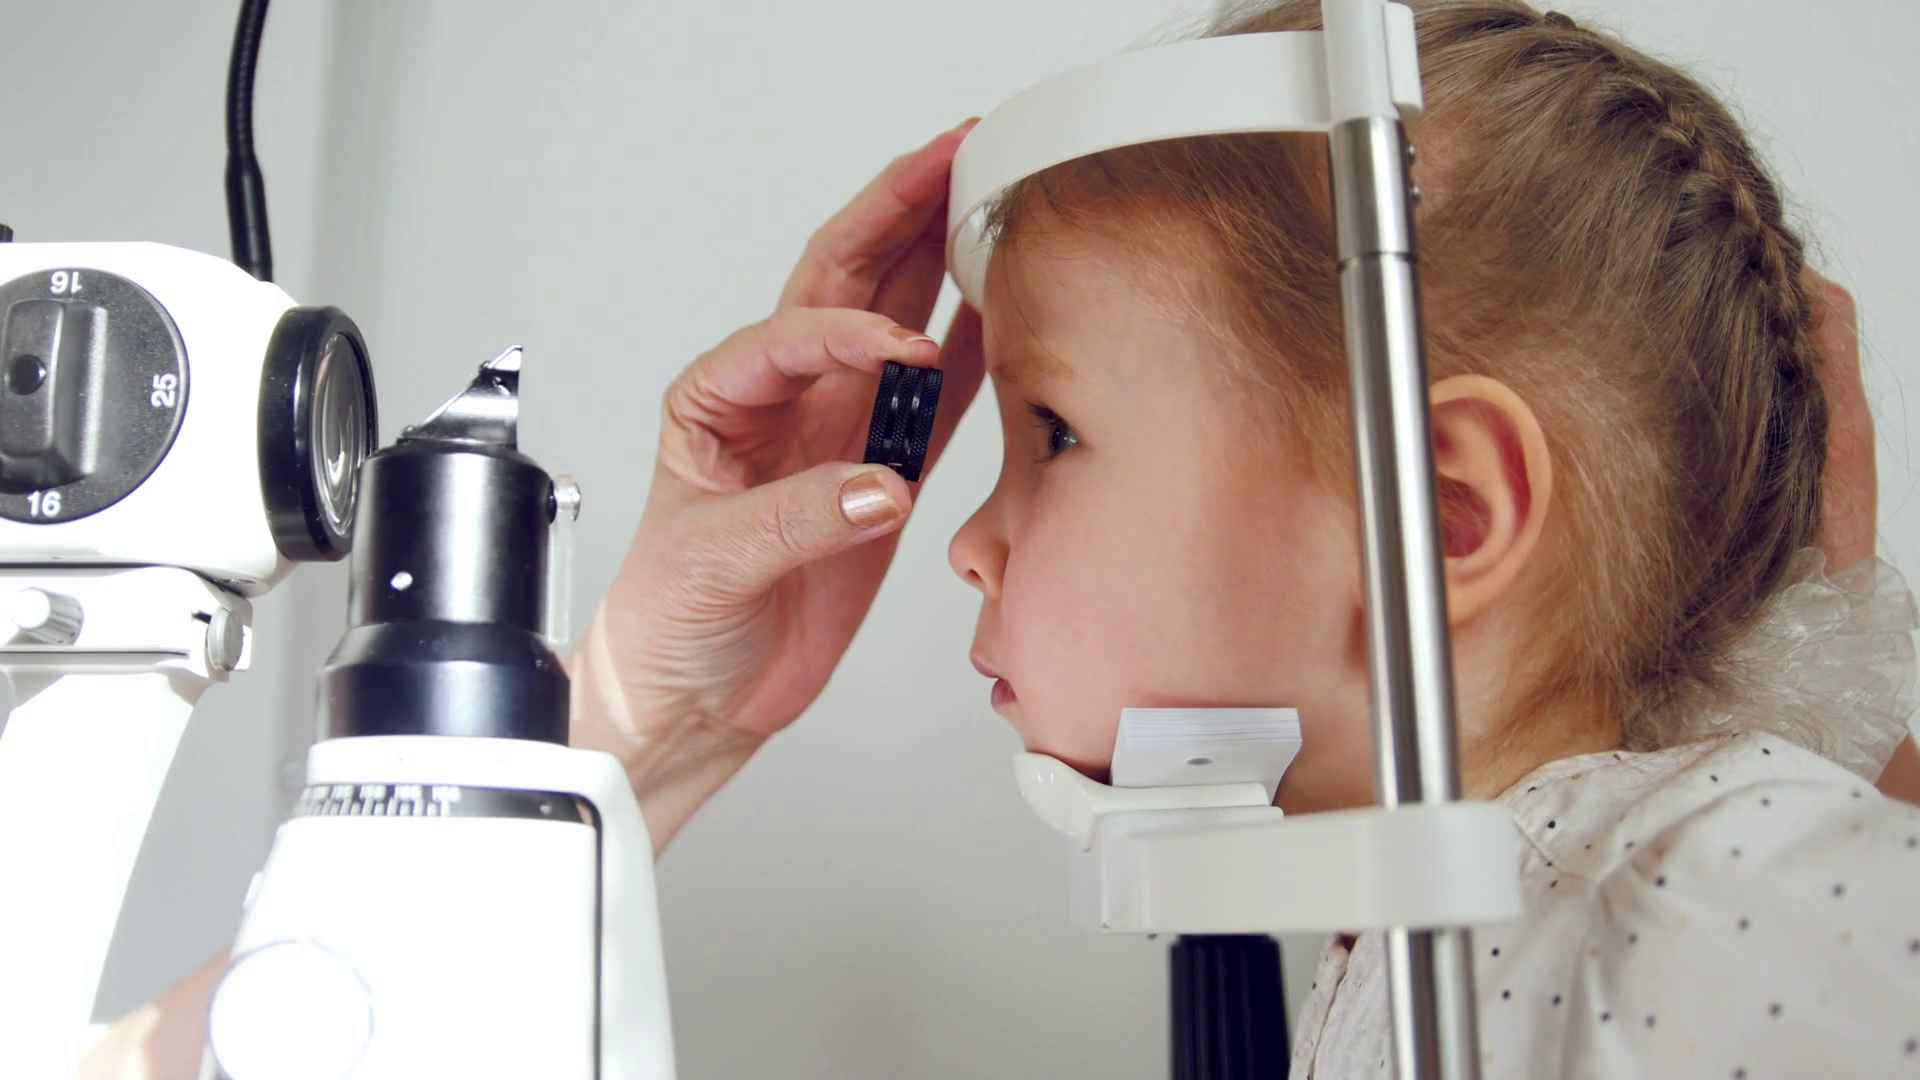 Wollongong Optometrist for Children's Vision and Eye Exams for all ages.